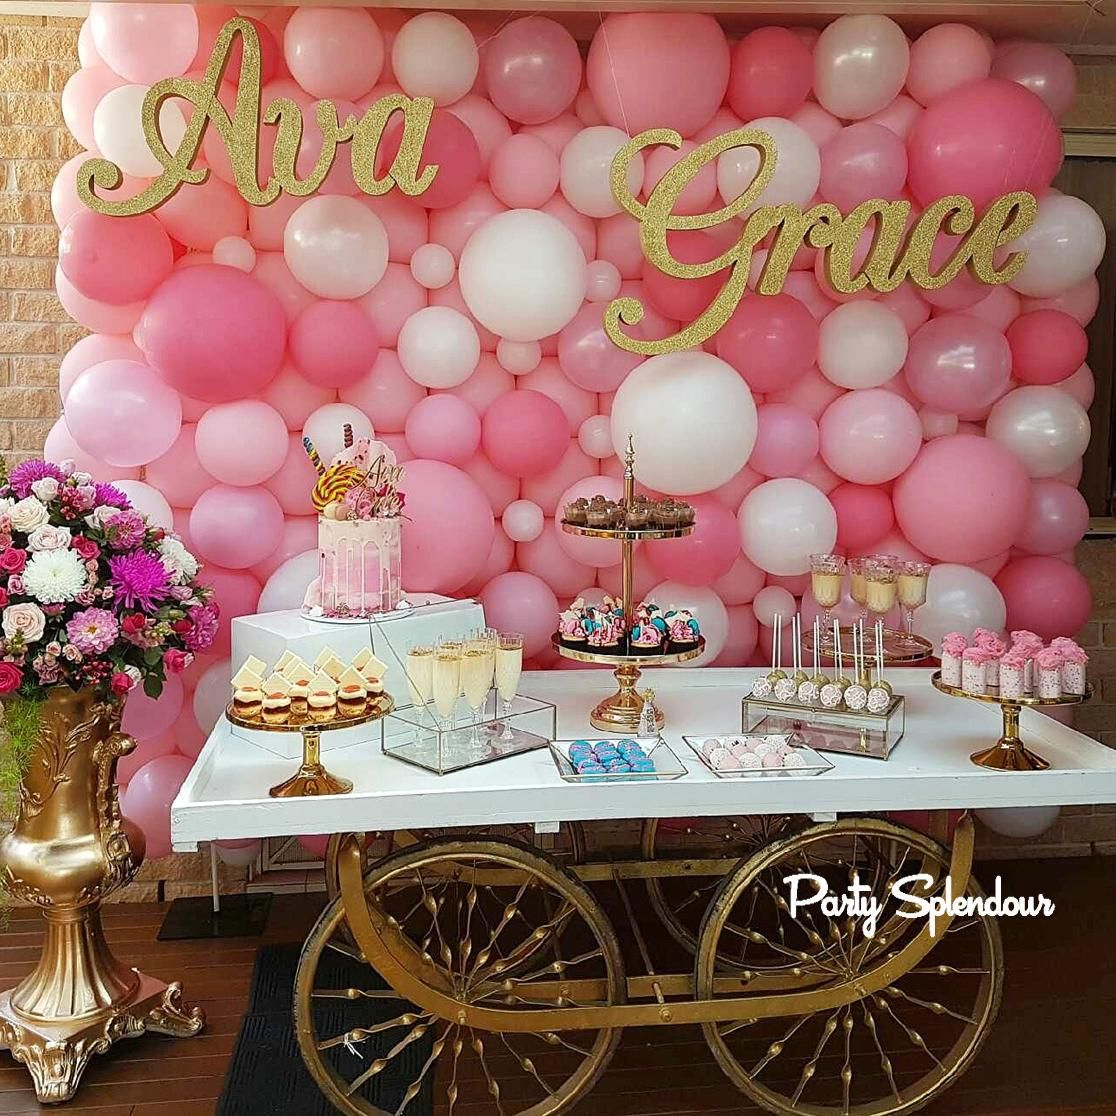 Gorgeous pink balloon wall by party splendour in sydney baby gorgeous pink balloon wall by party splendour in sydney amipublicfo Image collections